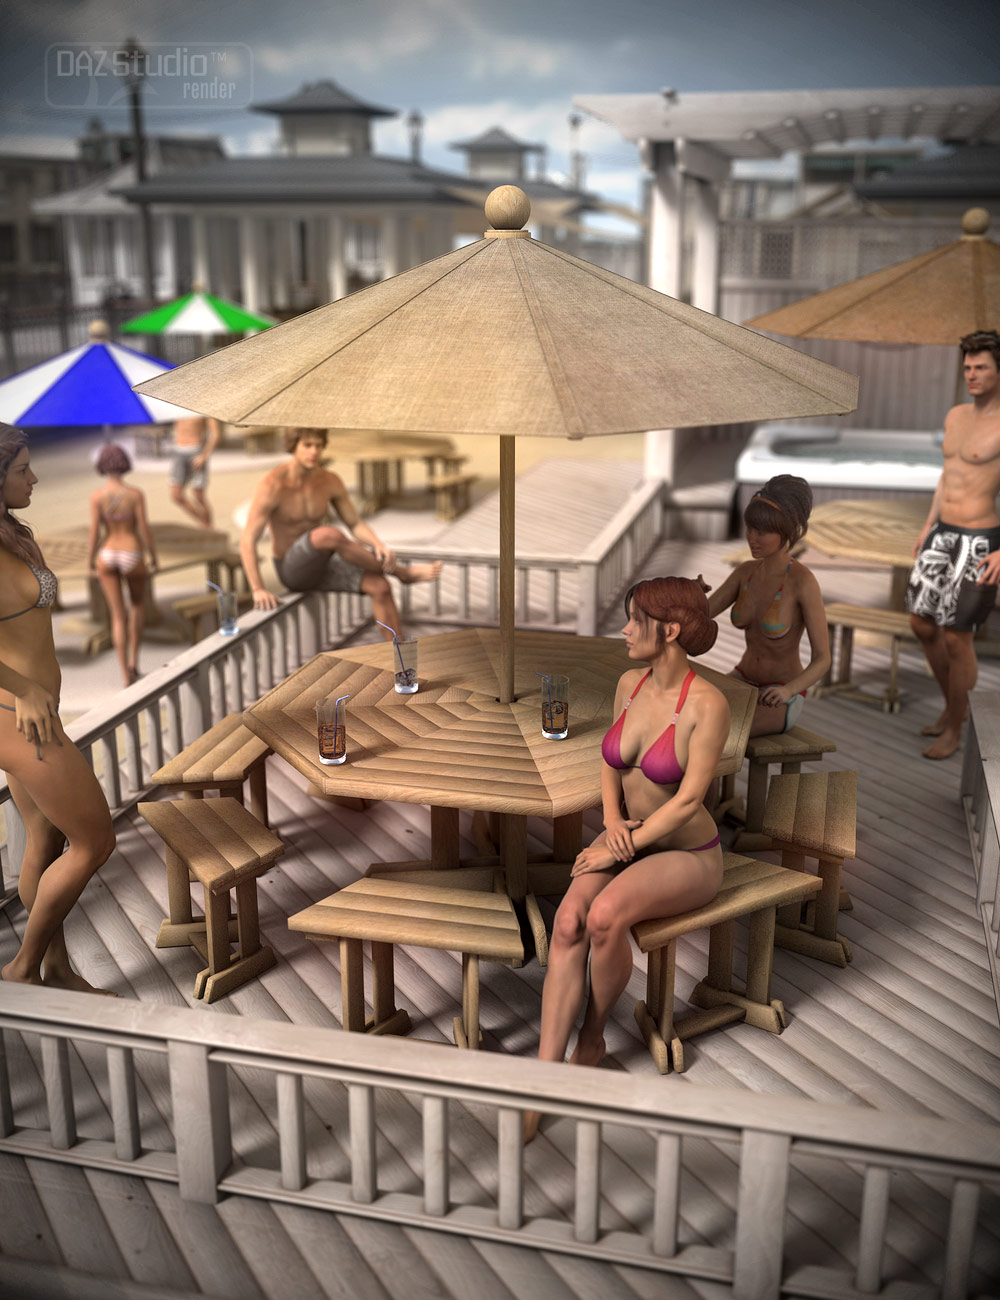 Umbrella Patio Table by: ARTCollab, 3D Models by Daz 3D